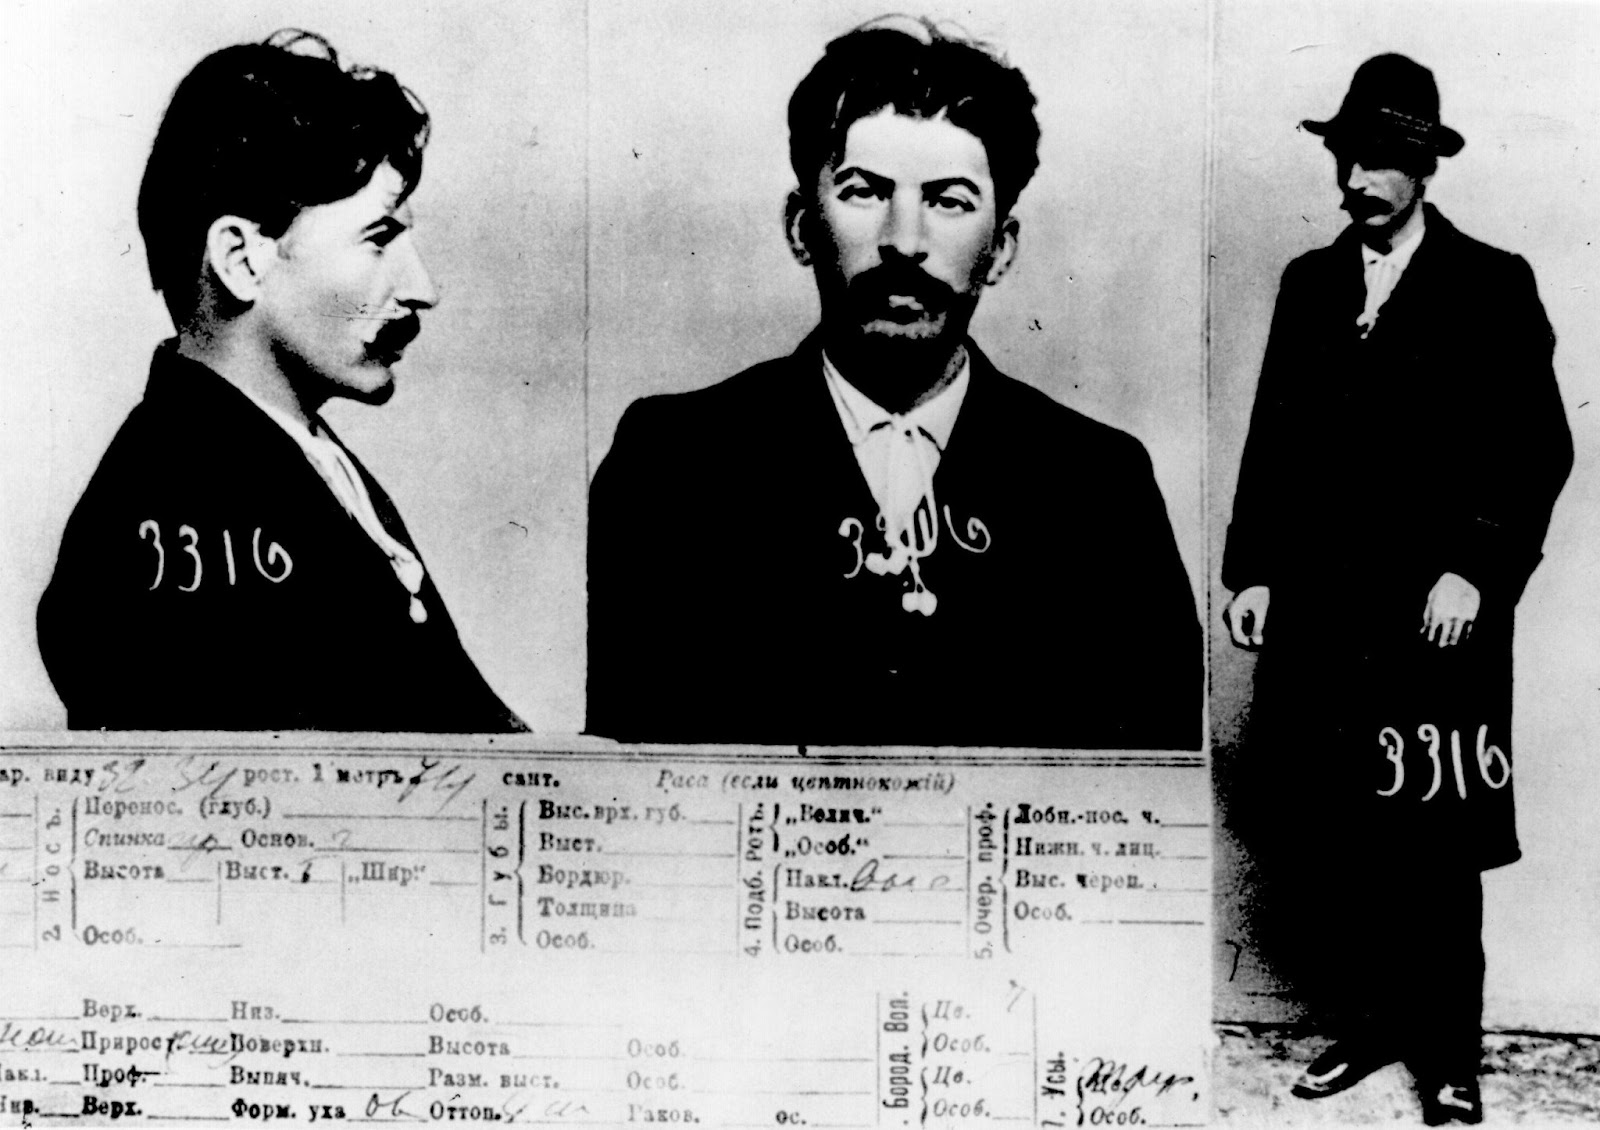 joseph stalin essay communism a lesson for trump from stalin lies  vintage everyday top facts you didn t know about joseph stalin mugshot of joseph stalin held